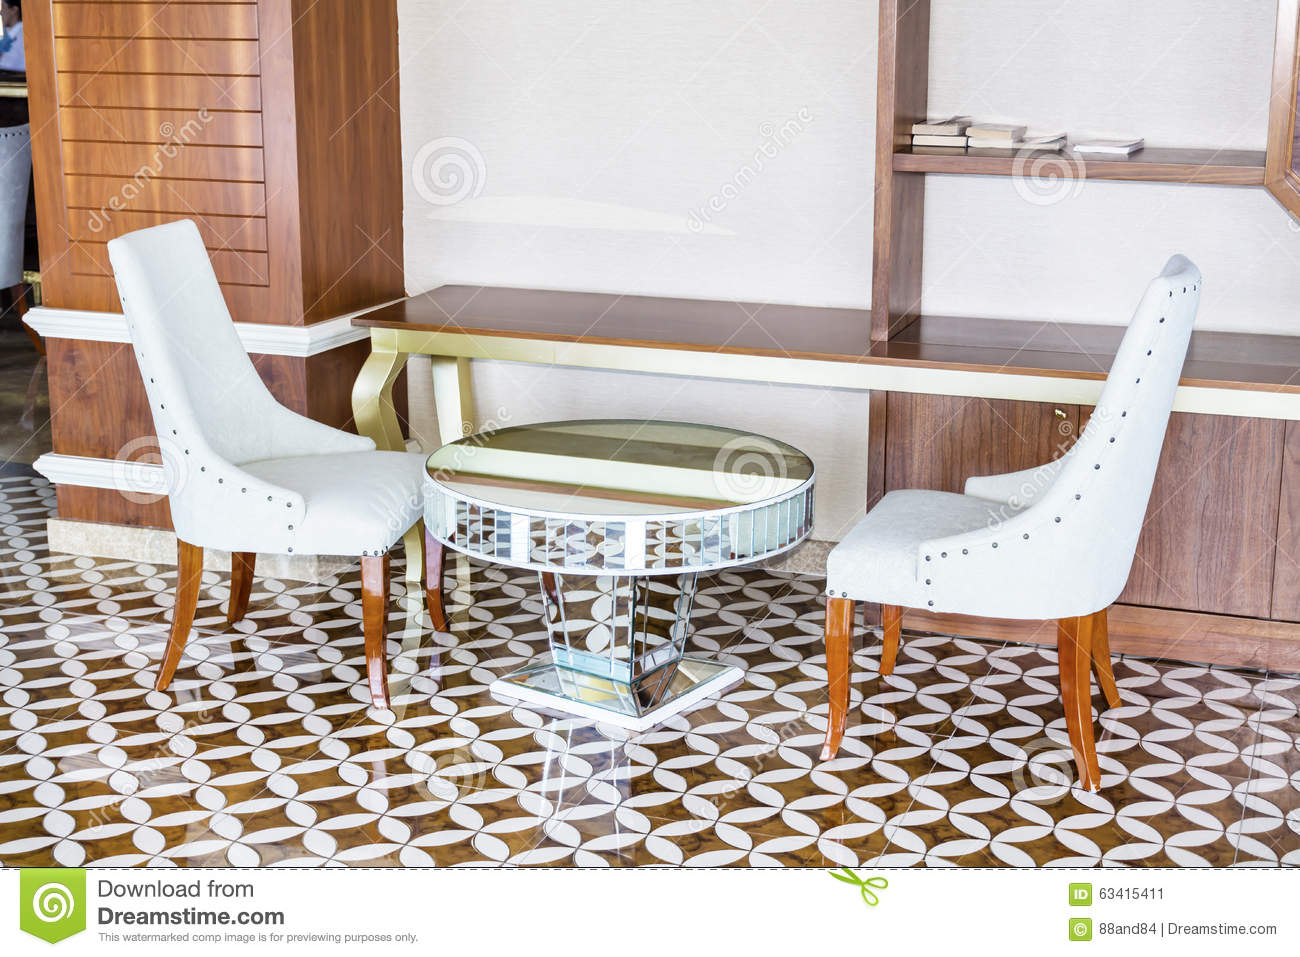 chair design for hotel black office chairs modern interior of a lobby with white